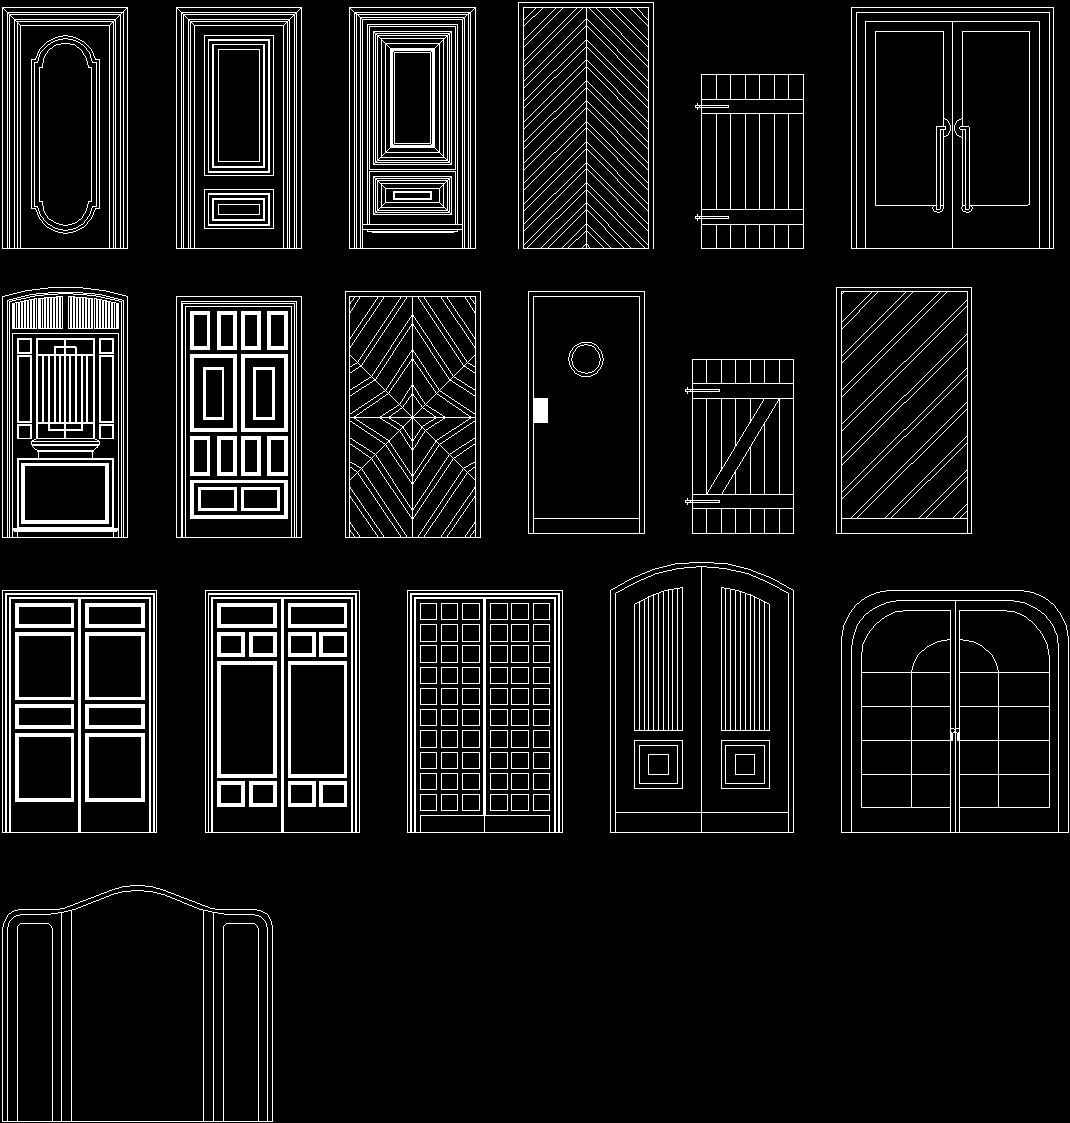 Autocad doors dwg aluminium sliding door detail dwg dwg for Door design autocad